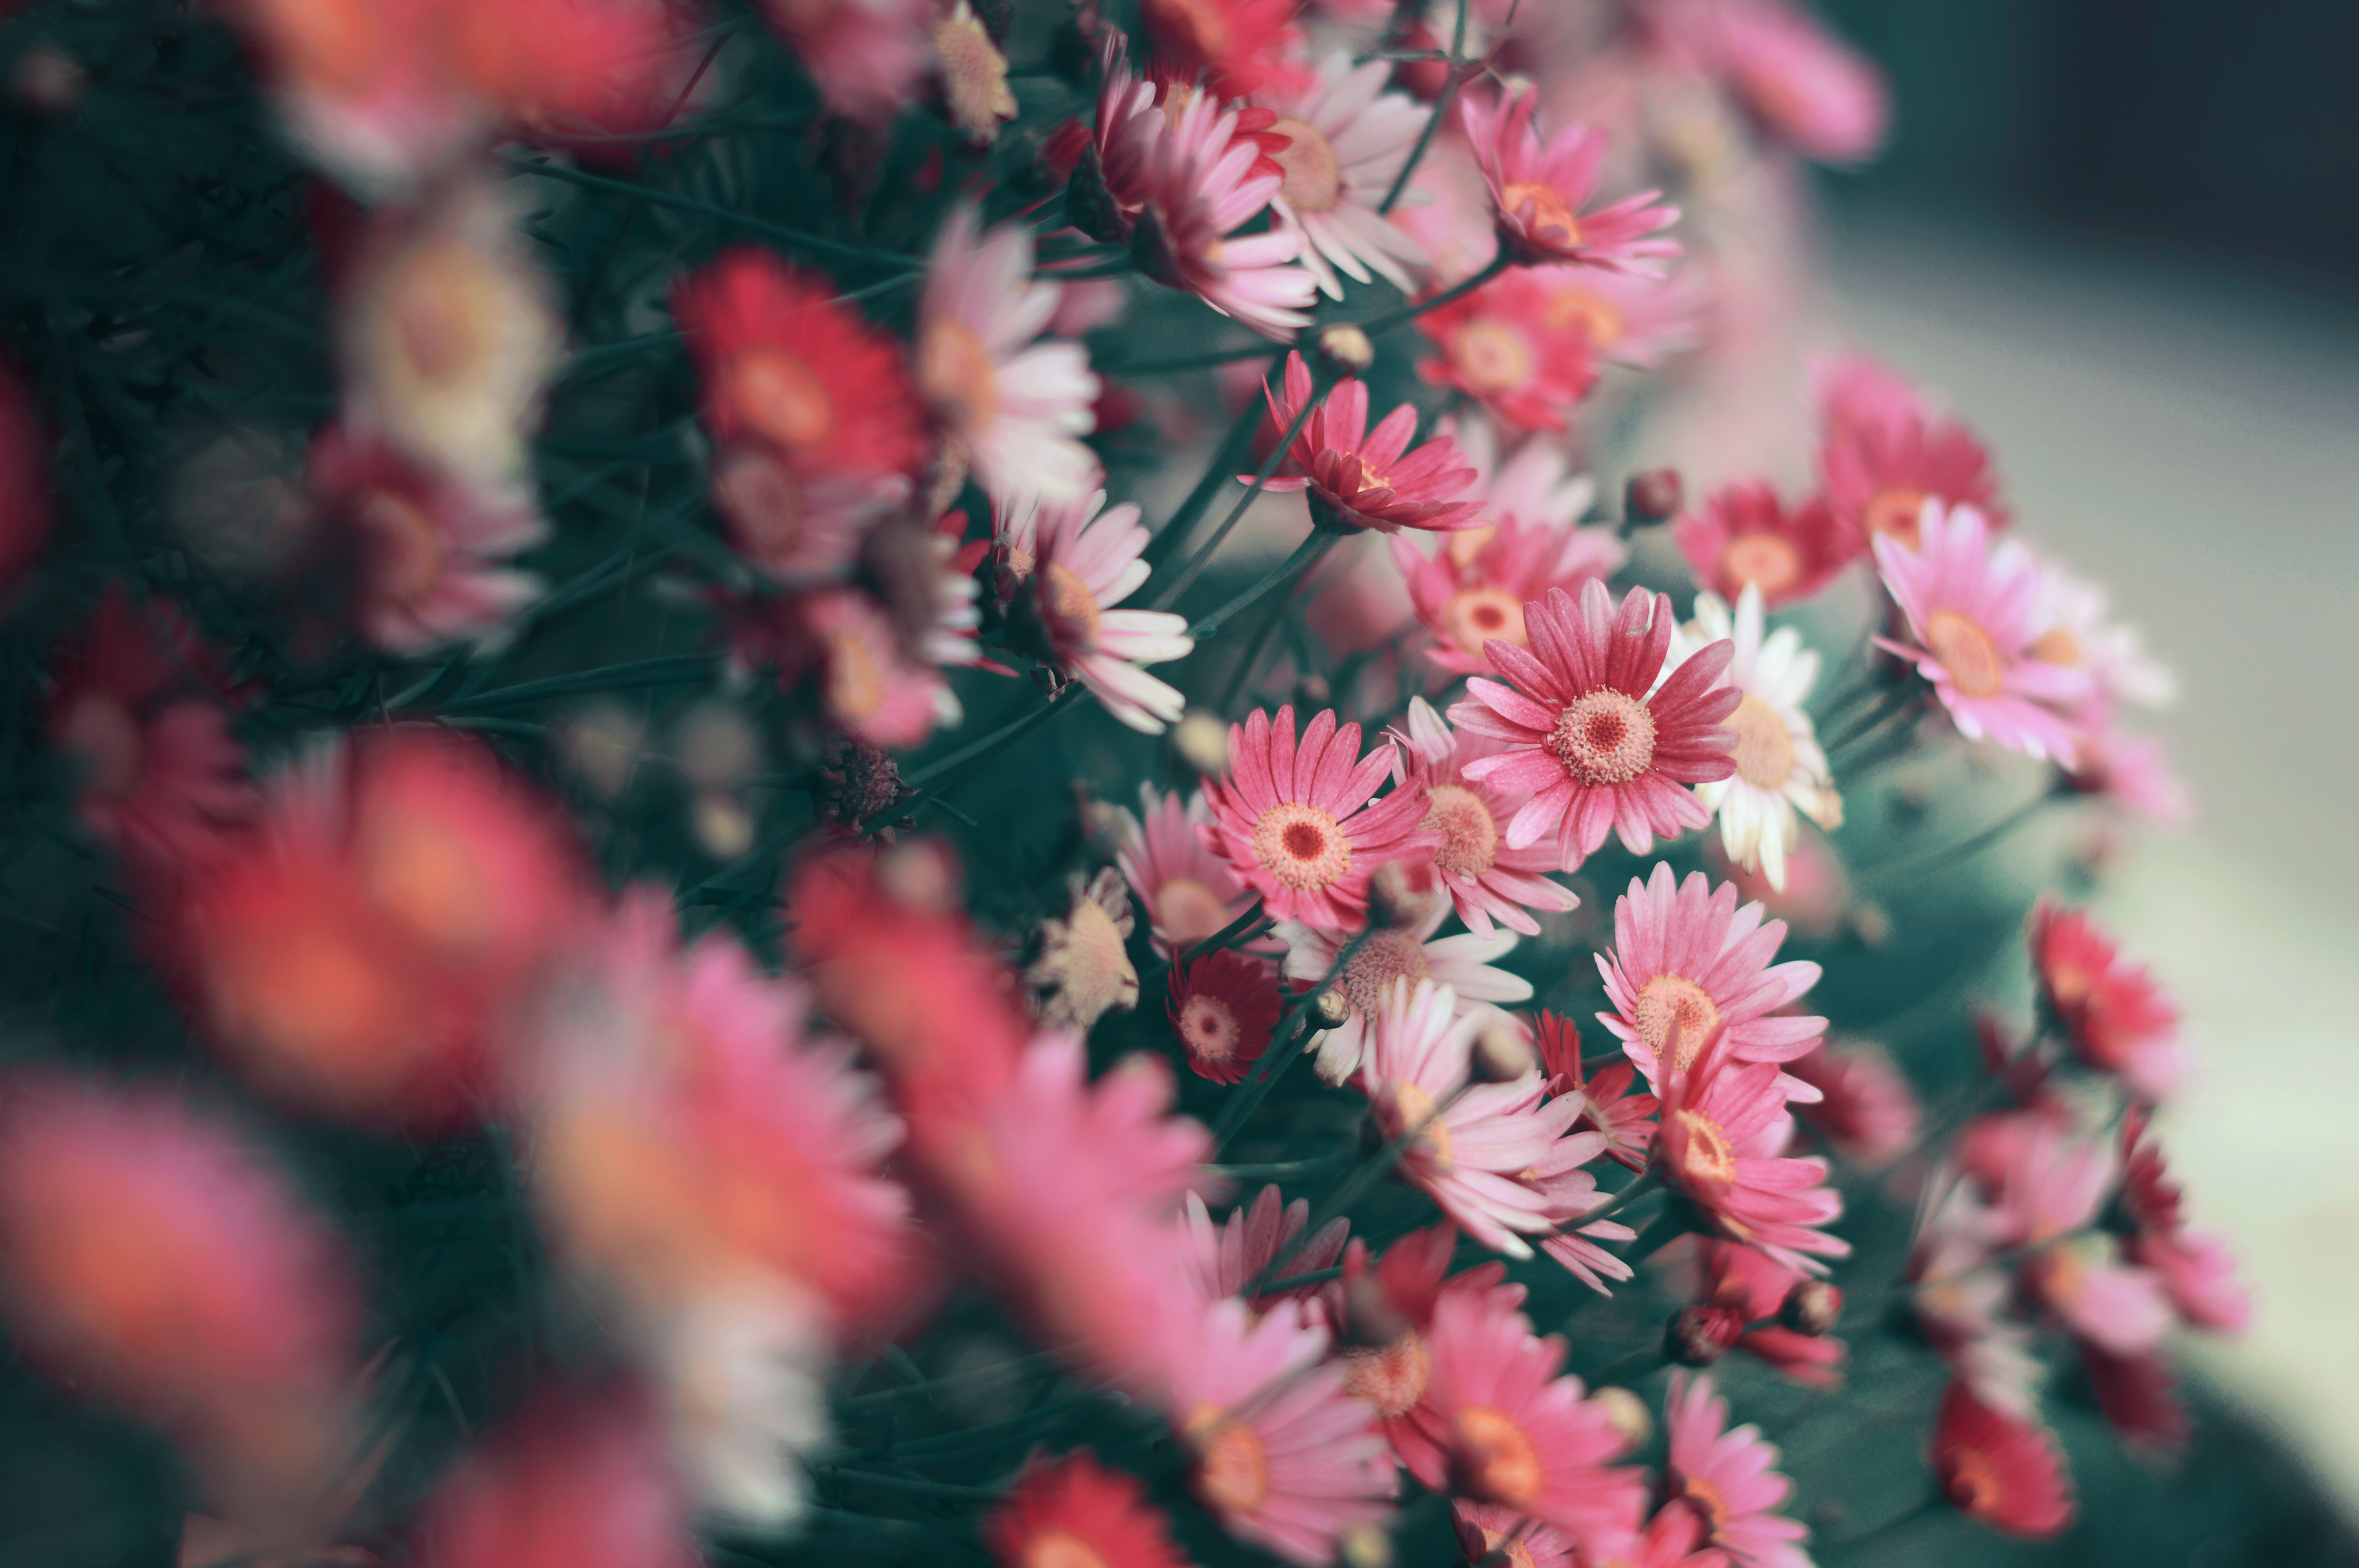 tilt shift lens photography of pink flowers